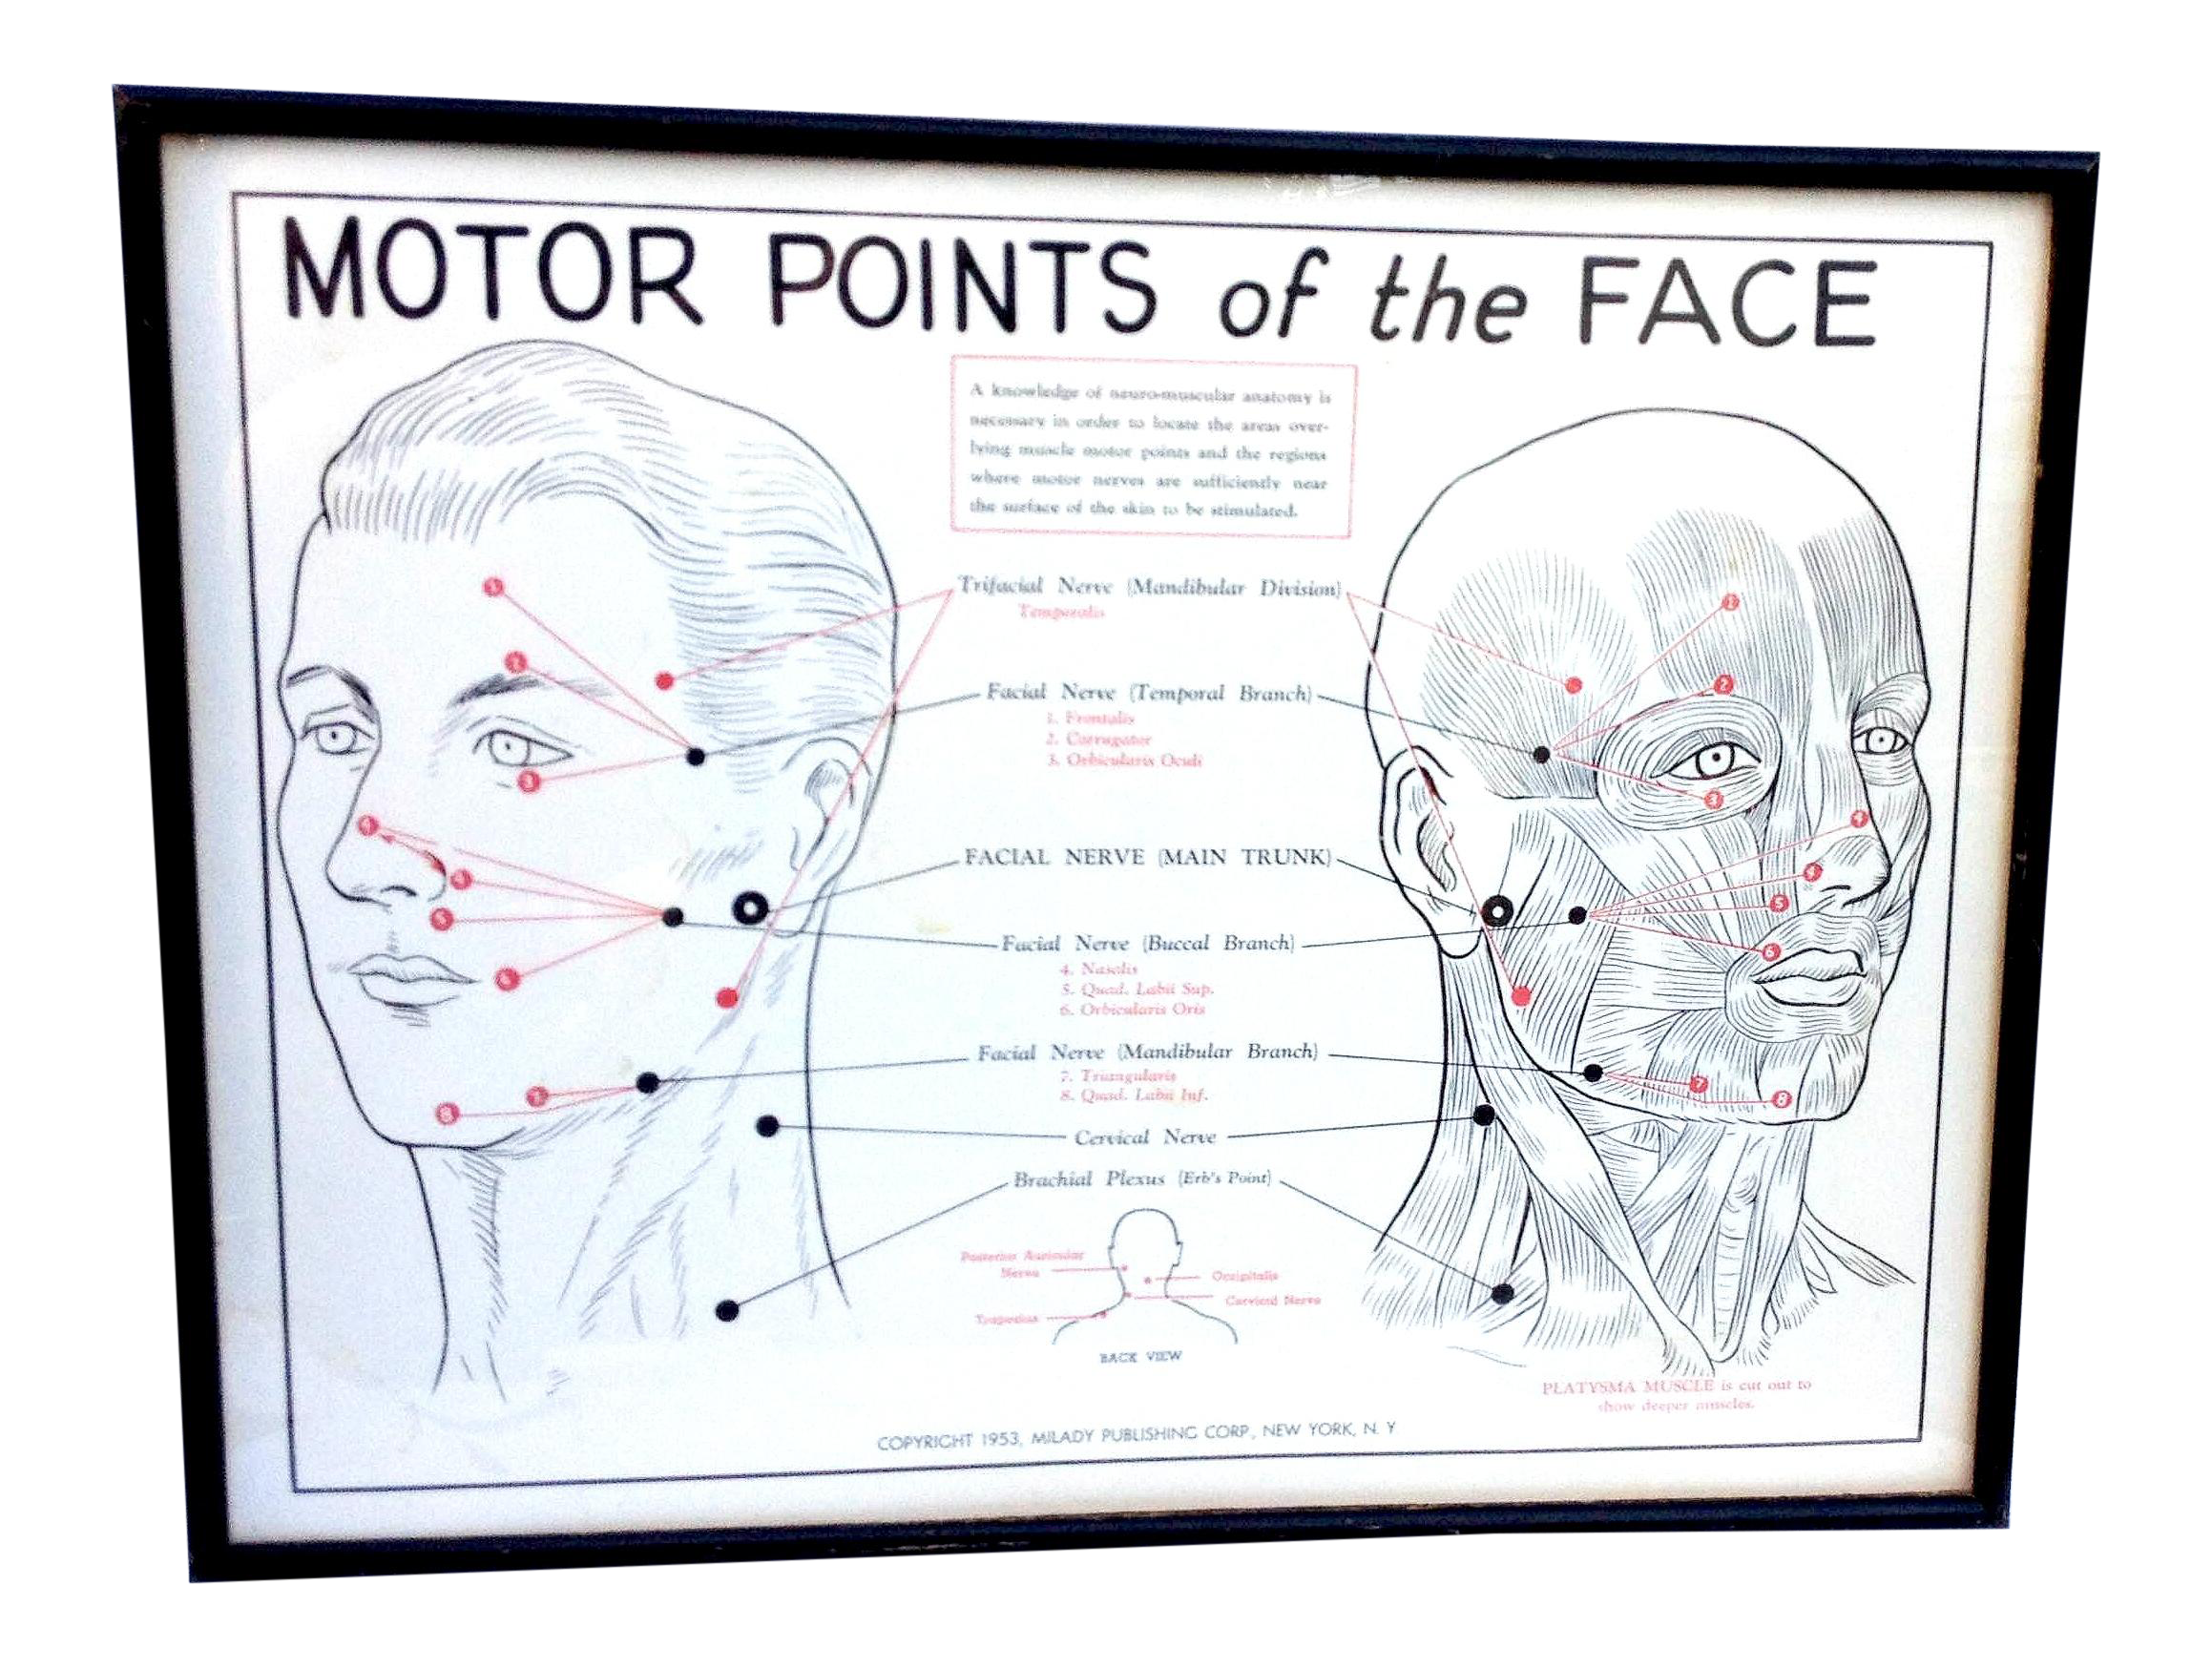 1953 motor points of the face diagram chairish pooptronica Image collections